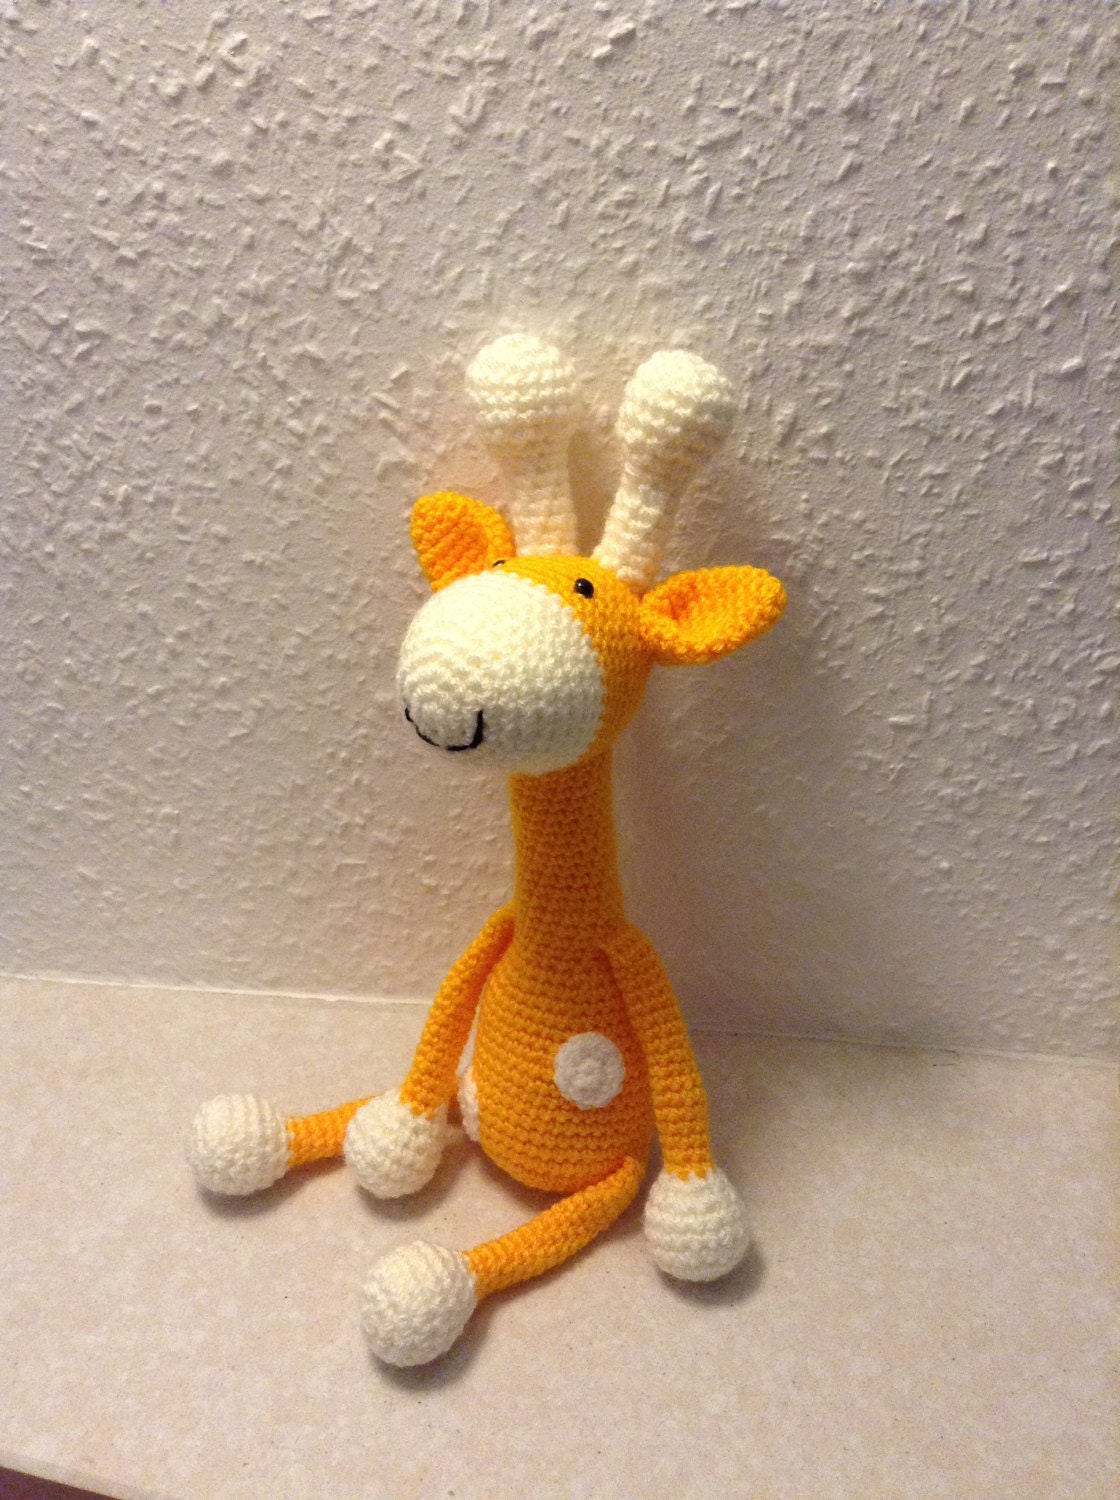 Crochet Giraffe amigurumi Giraffe toy stuffed animal plush toy gifts for kids handmade toy baby showers gifts plush Giraffe toy